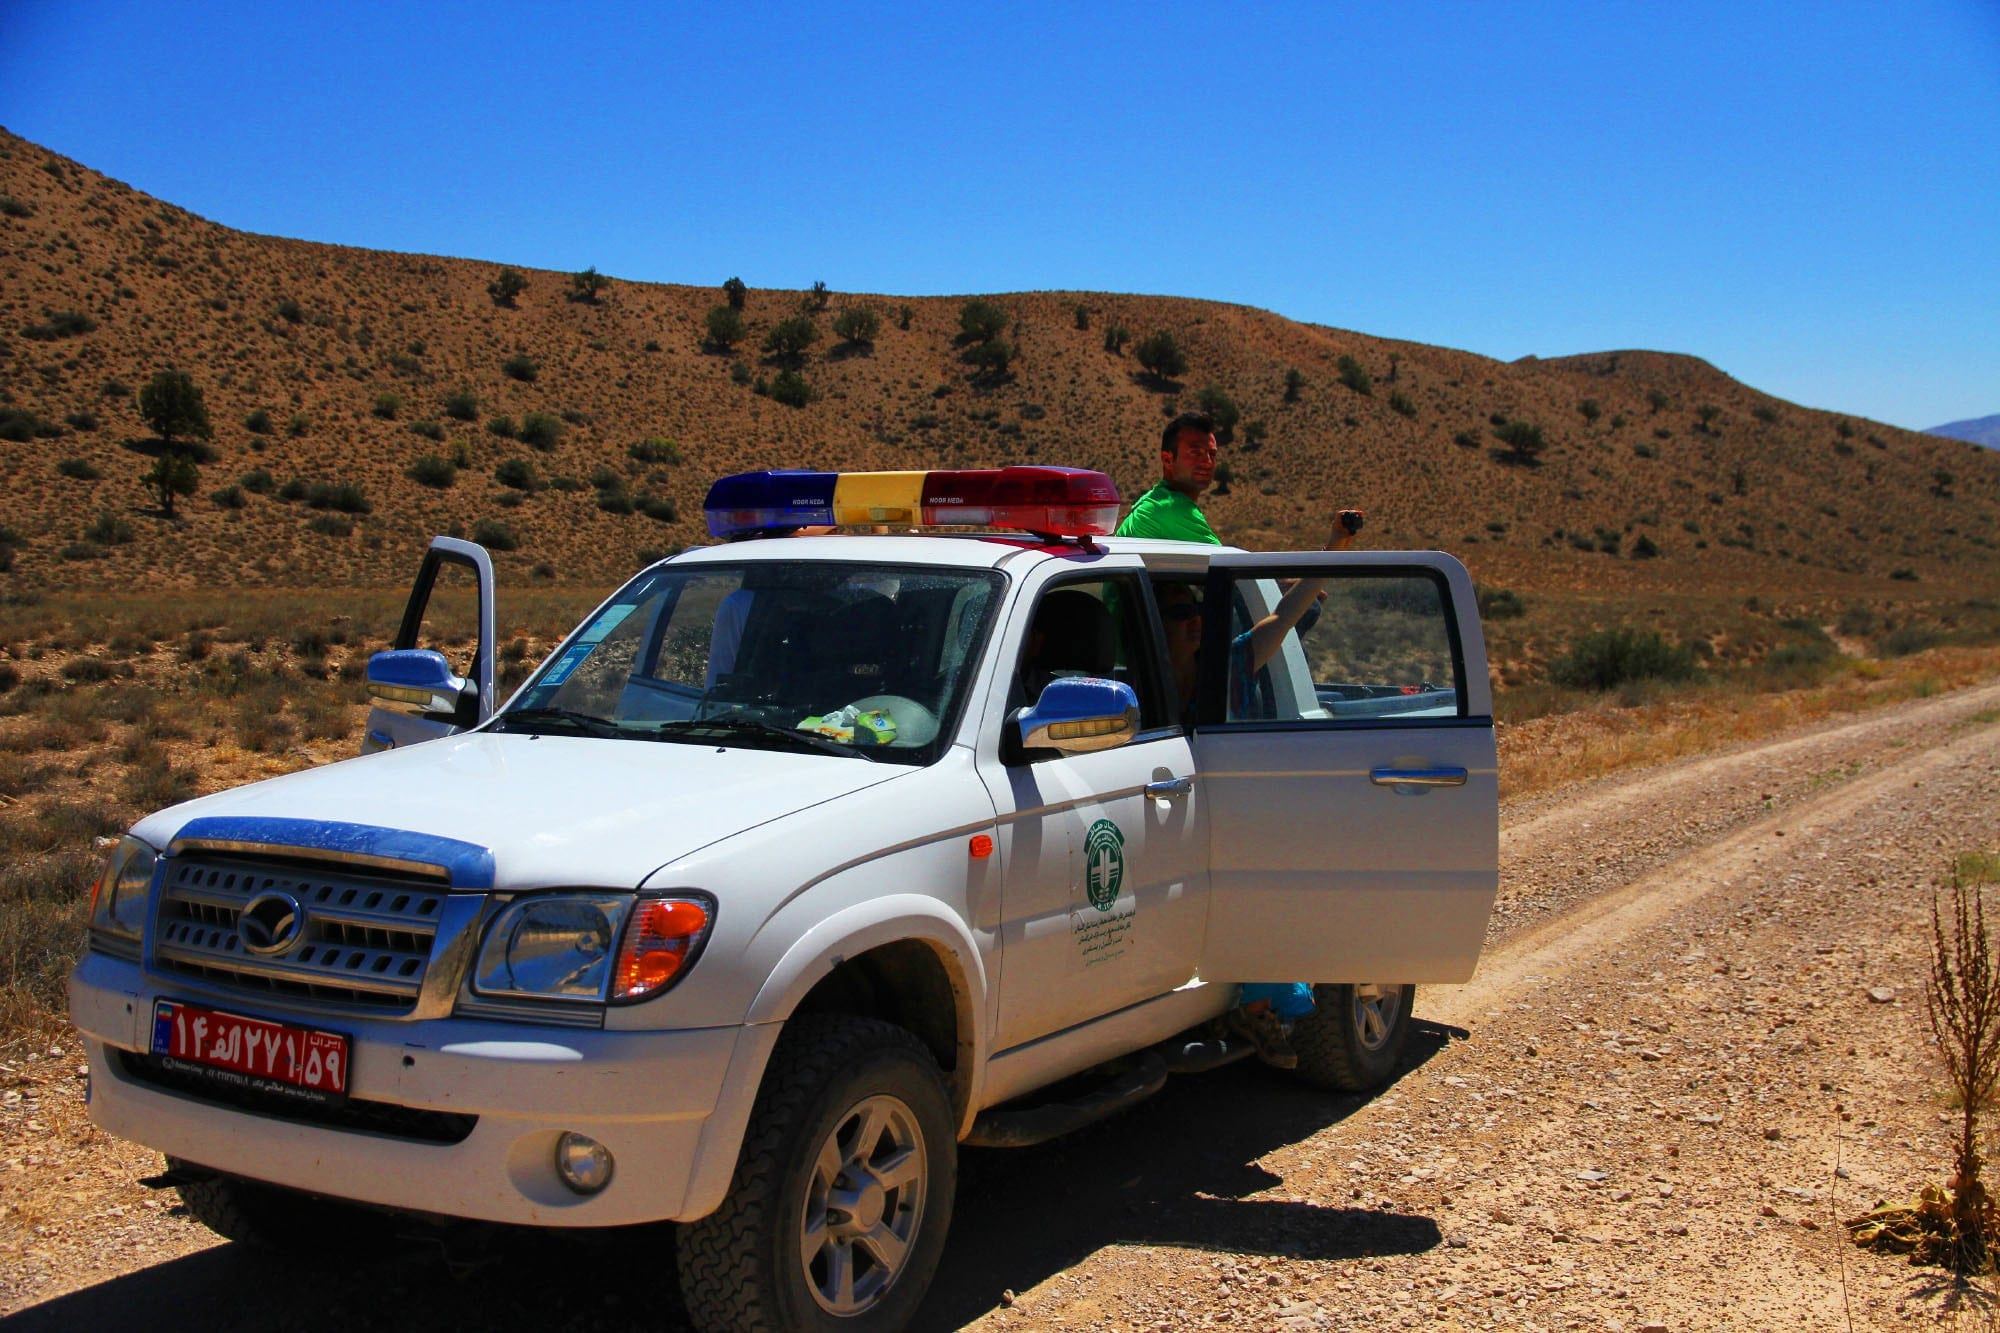 The car of environmental organization transferred our equipment and backpacks to the camp.